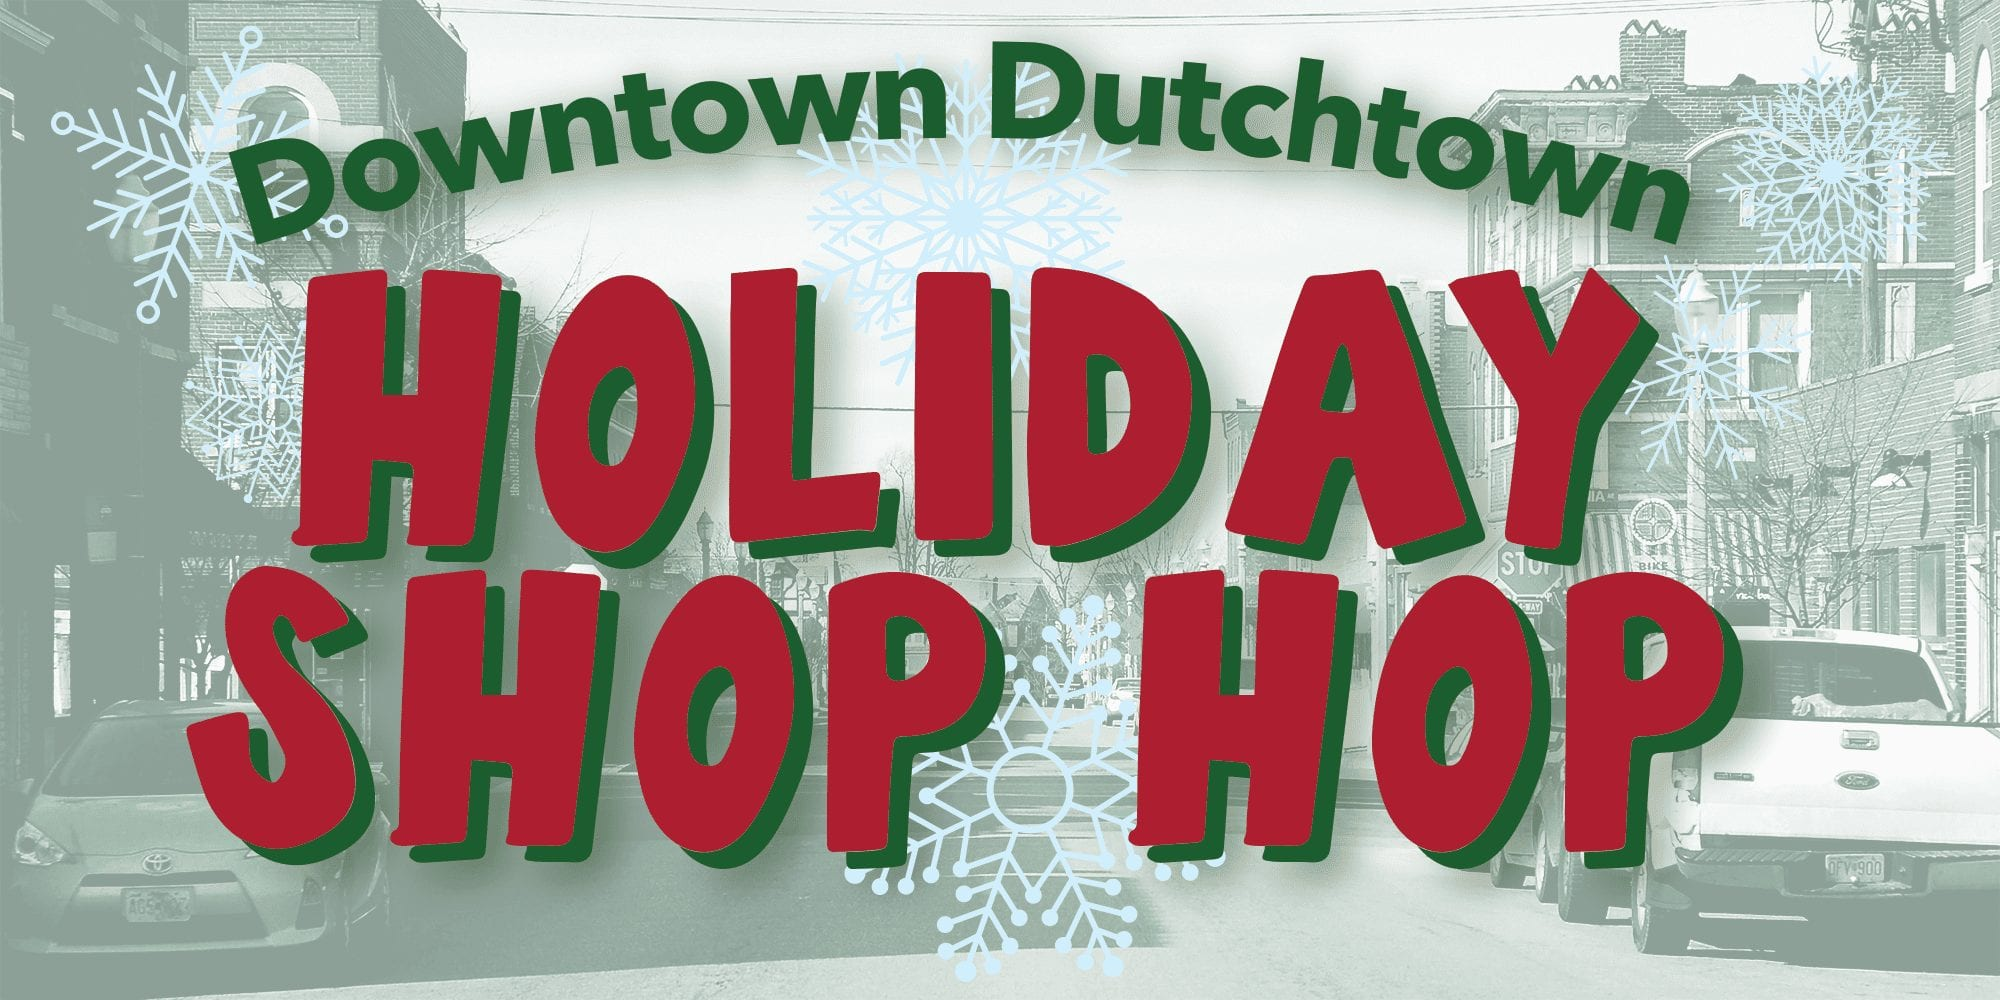 Downtown Dutchtown Holiday Shop Hop